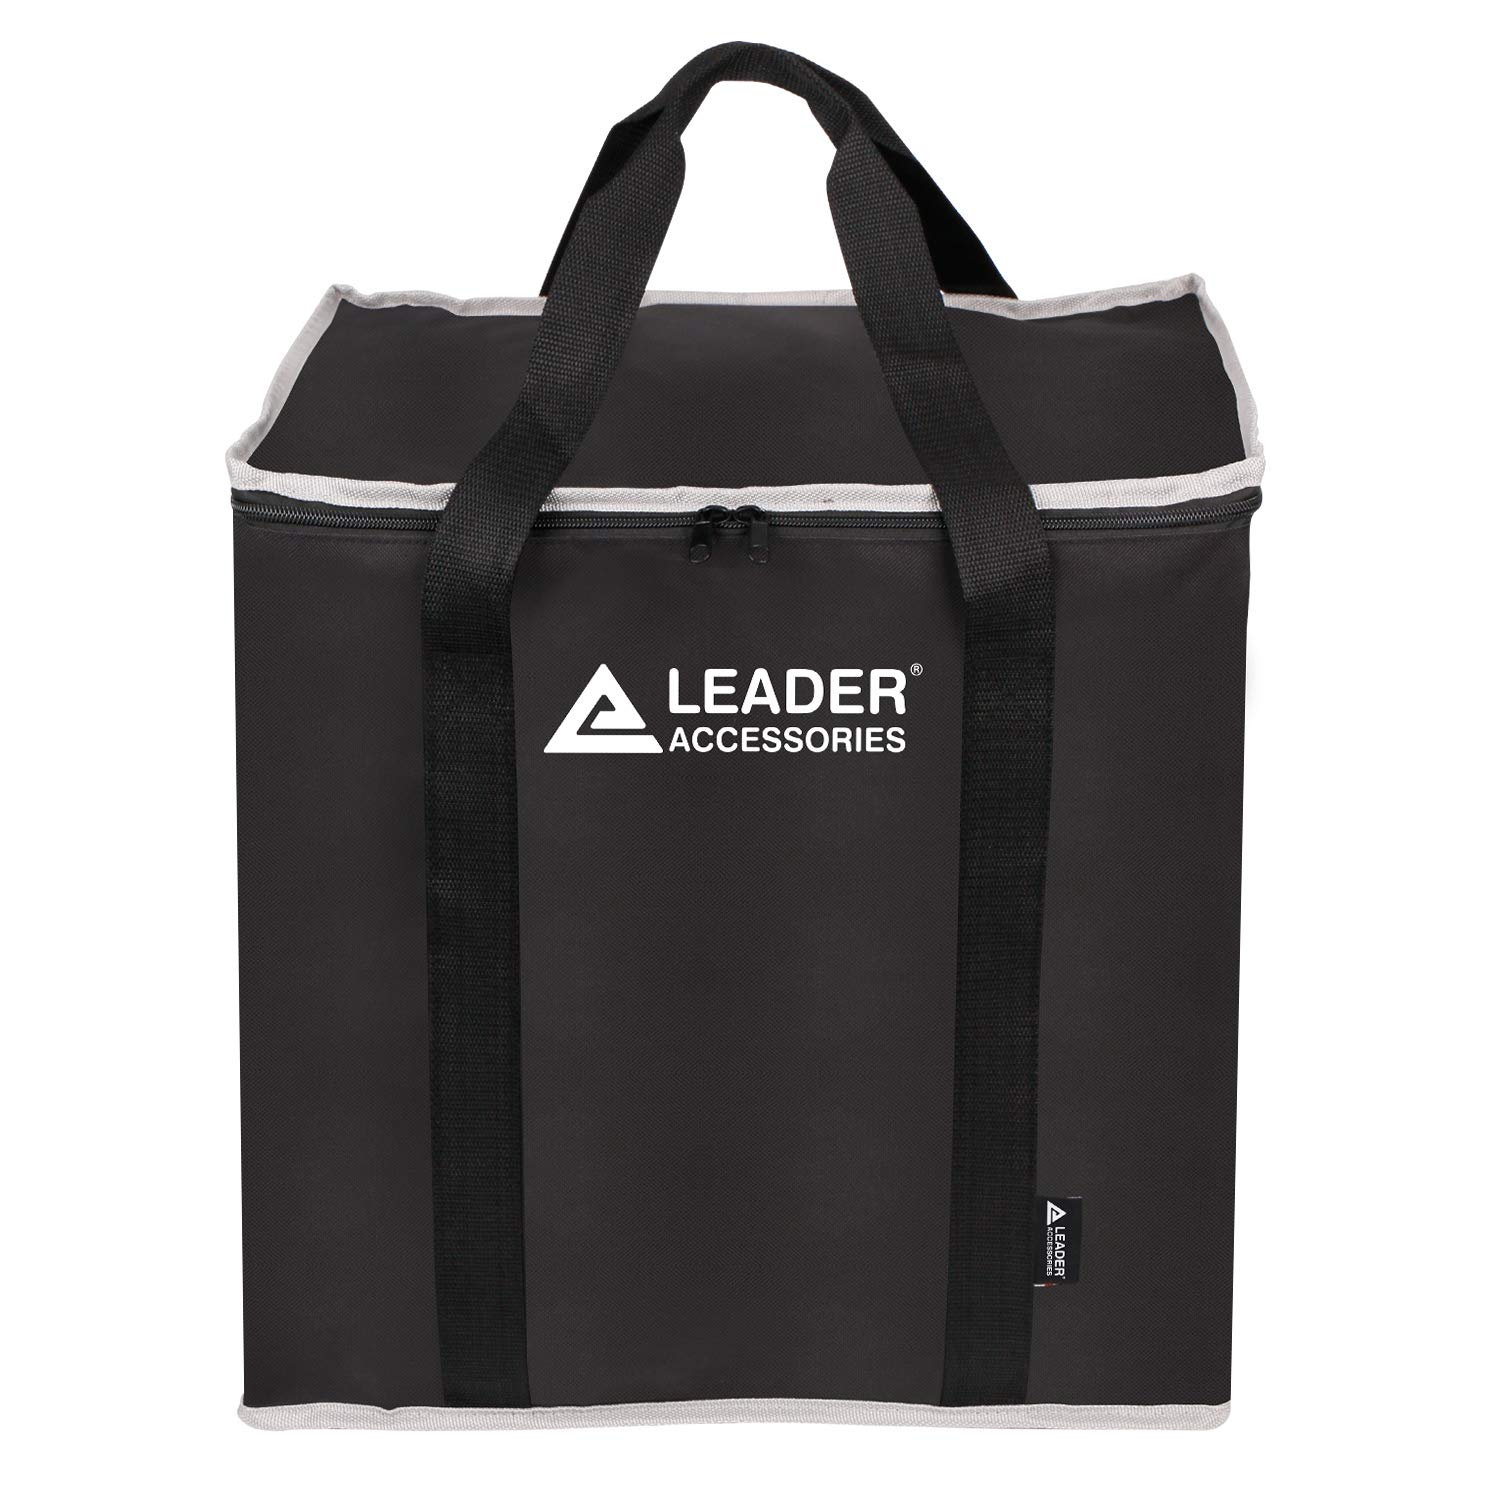 Leader Accessories Heavy Duty Waterproof Portable Toilet Storage Bag with Handles, Washable, Black by Leader Accessories